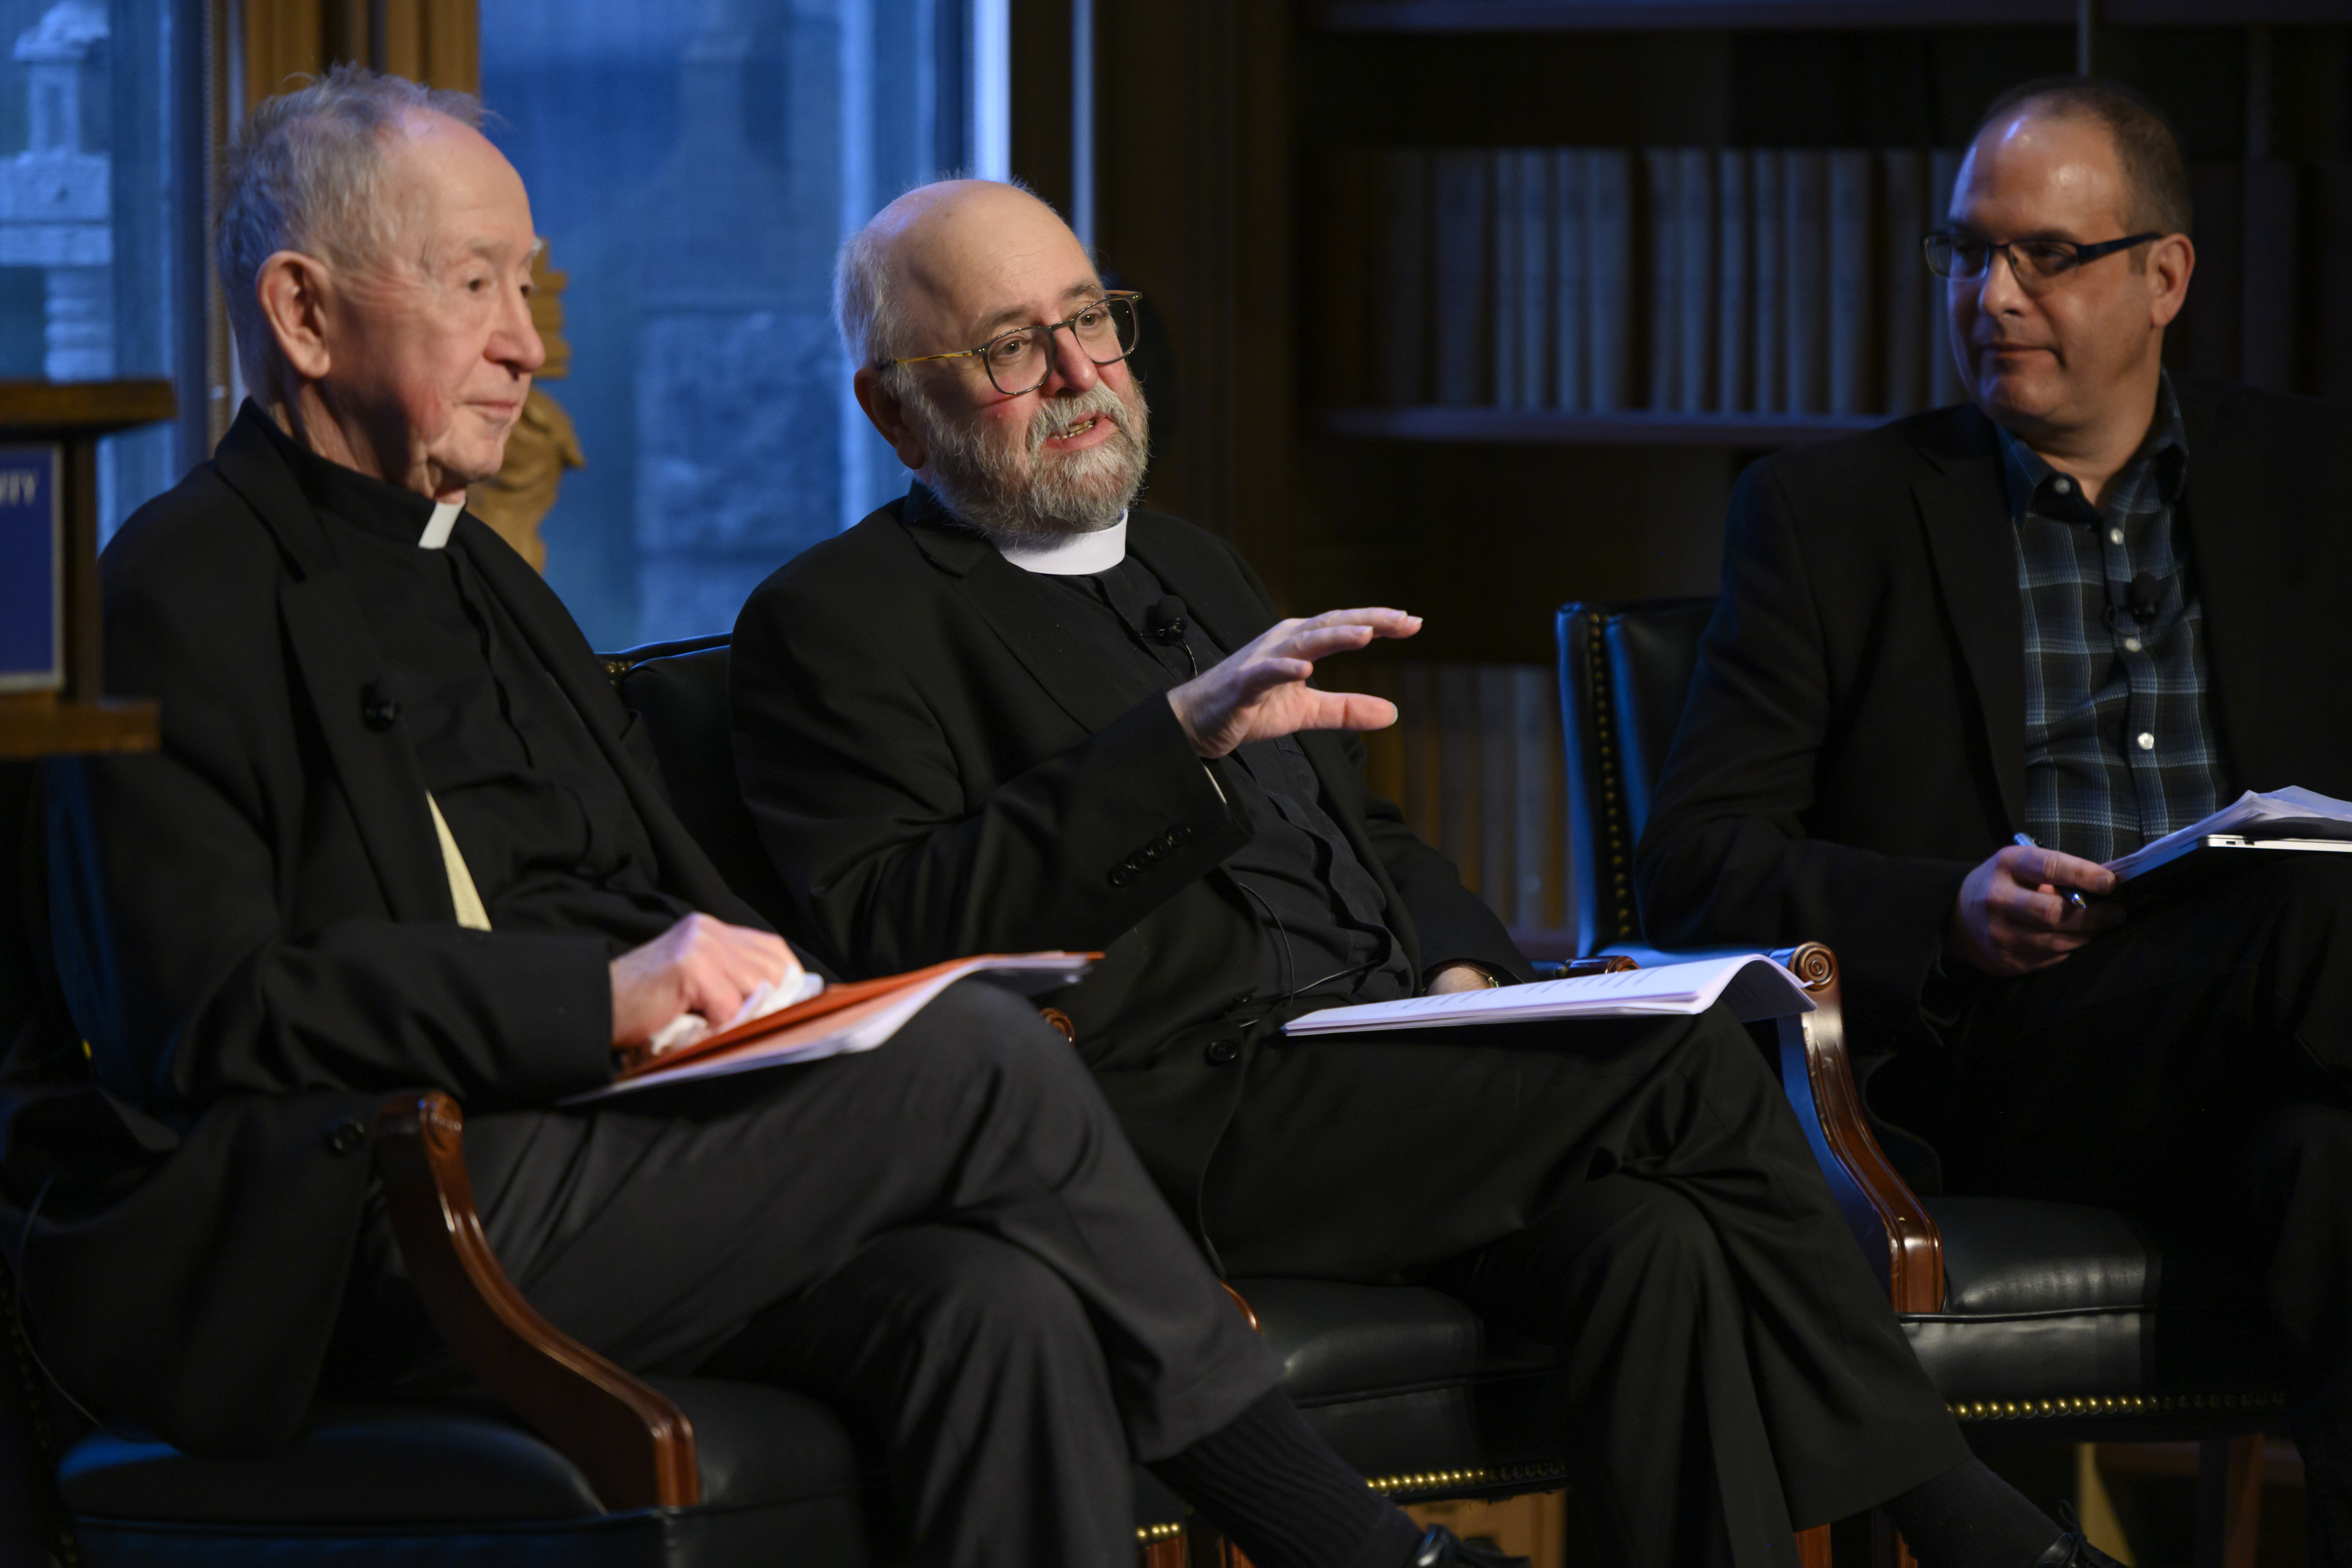 John W. O'Malley, S.J. and Frederick Aquino join Mark Chapman for a discussion.